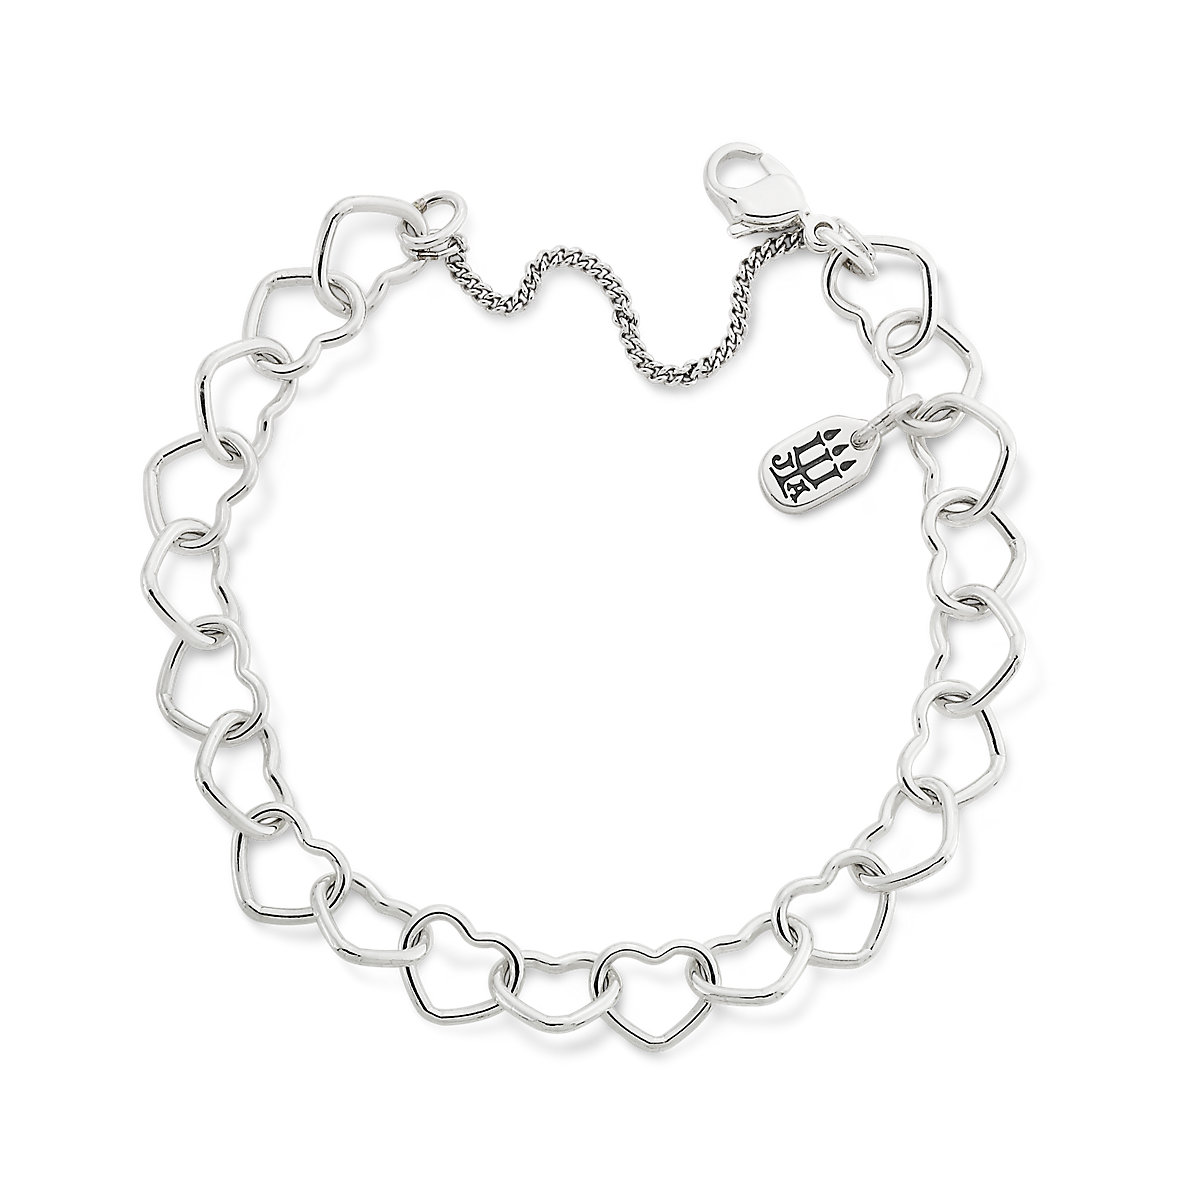 Connected Hearts Charm Bracelet   James Avery